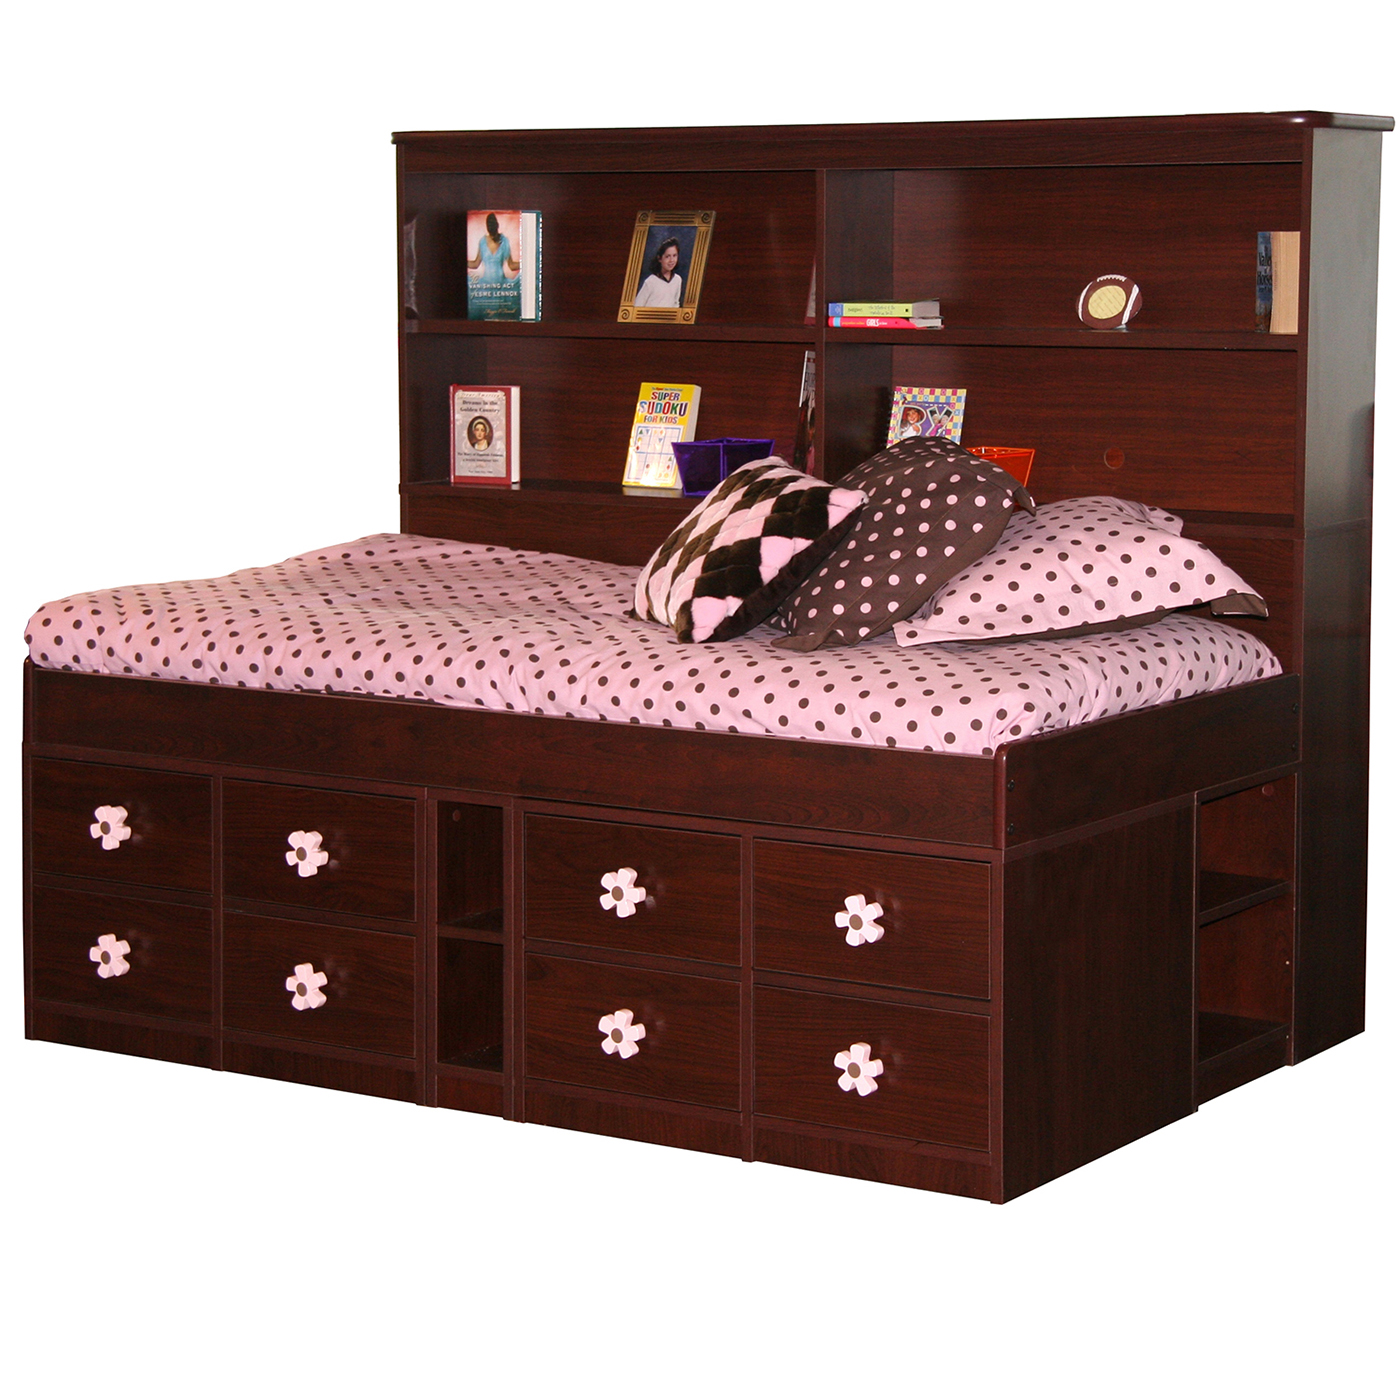 Berg Furniture Sierra Jr Captain S Bed With Low Frame Twin